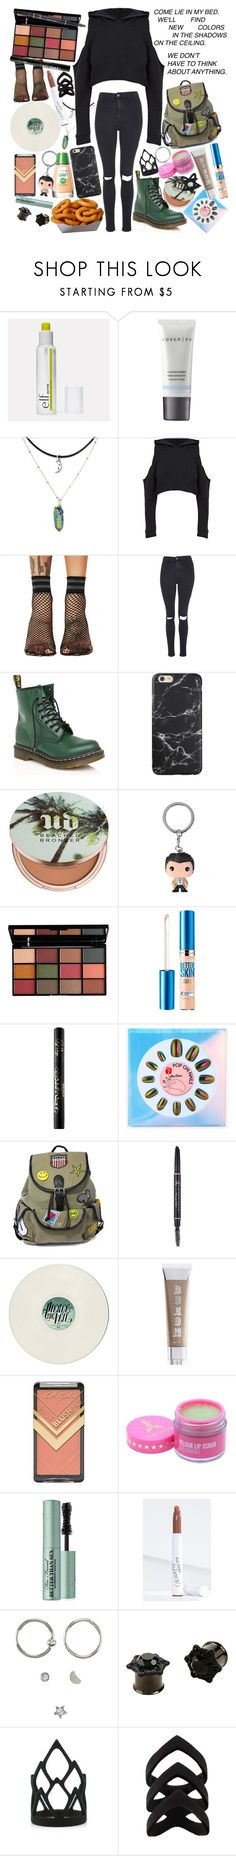 """""""Don't mind me, I'm just reaching for your necklace. Talking to my mom about this little girl from Texas."""" by thelyricsmatter ❤ liked on Polyvore featuring Cover FX, Ana Accessories, Topshop, Dr. Martens, Urban Decay, Hot Topic, NYX, Maybelline, Kat Von D and Like Dreams"""